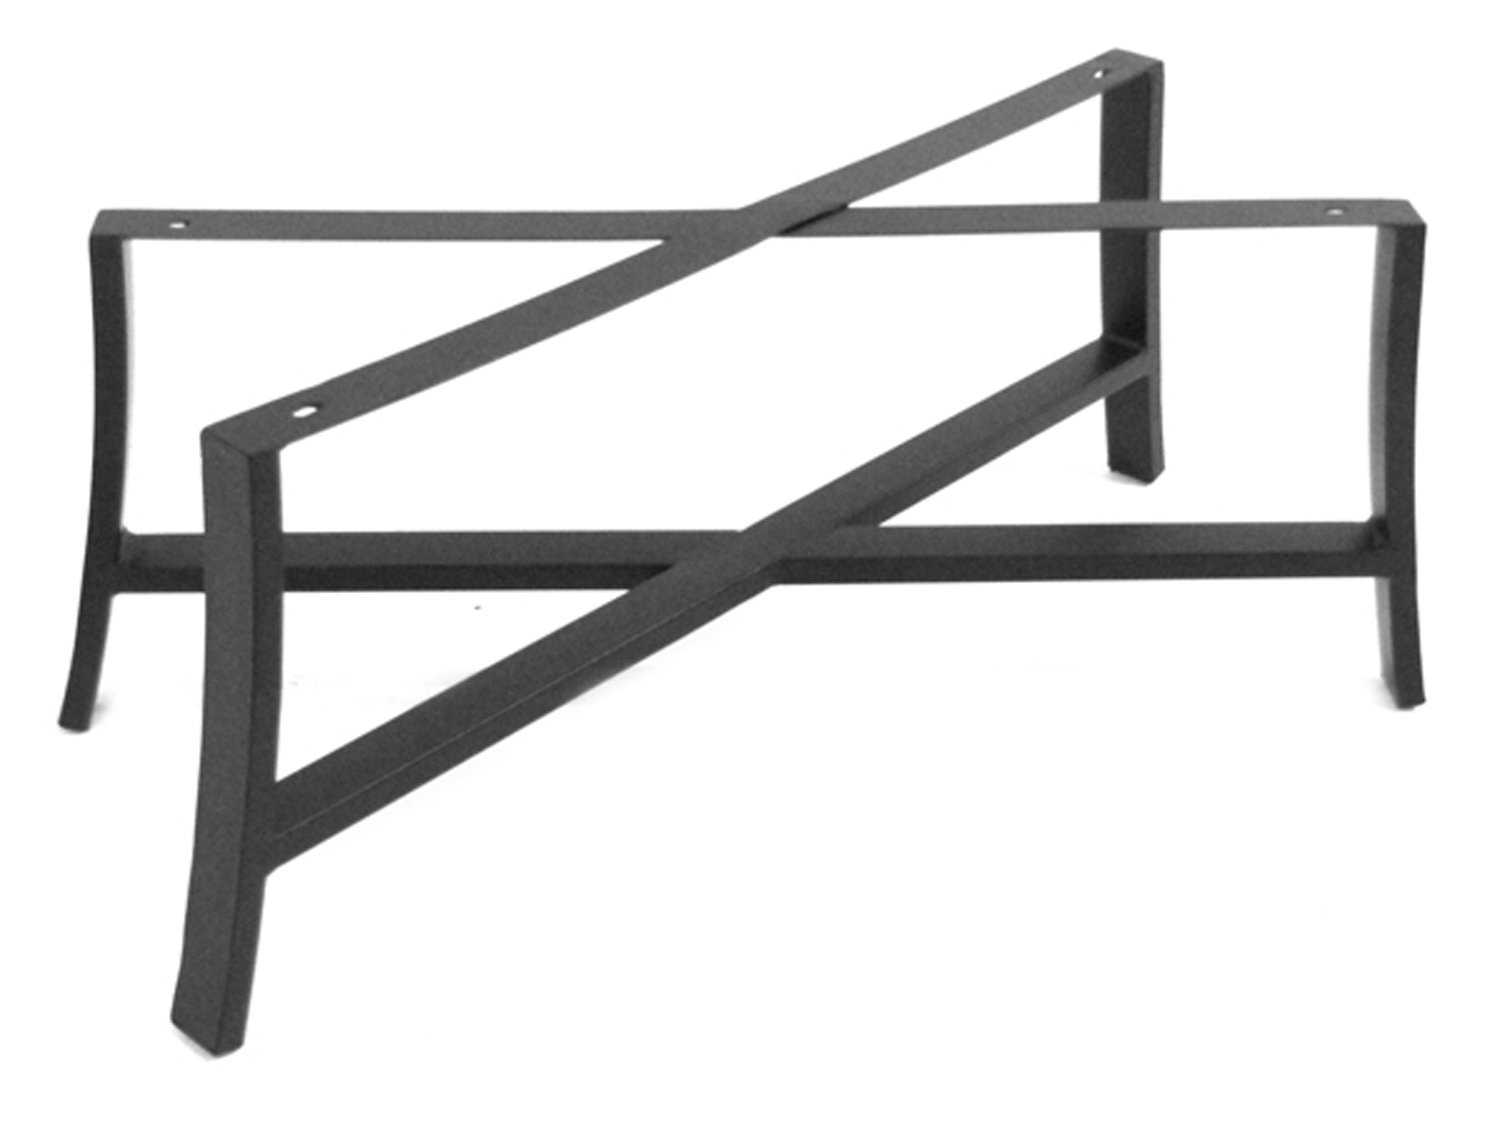 Meadowcraft maddux wrought iron coffee table base 4413370 01 Bases for coffee tables